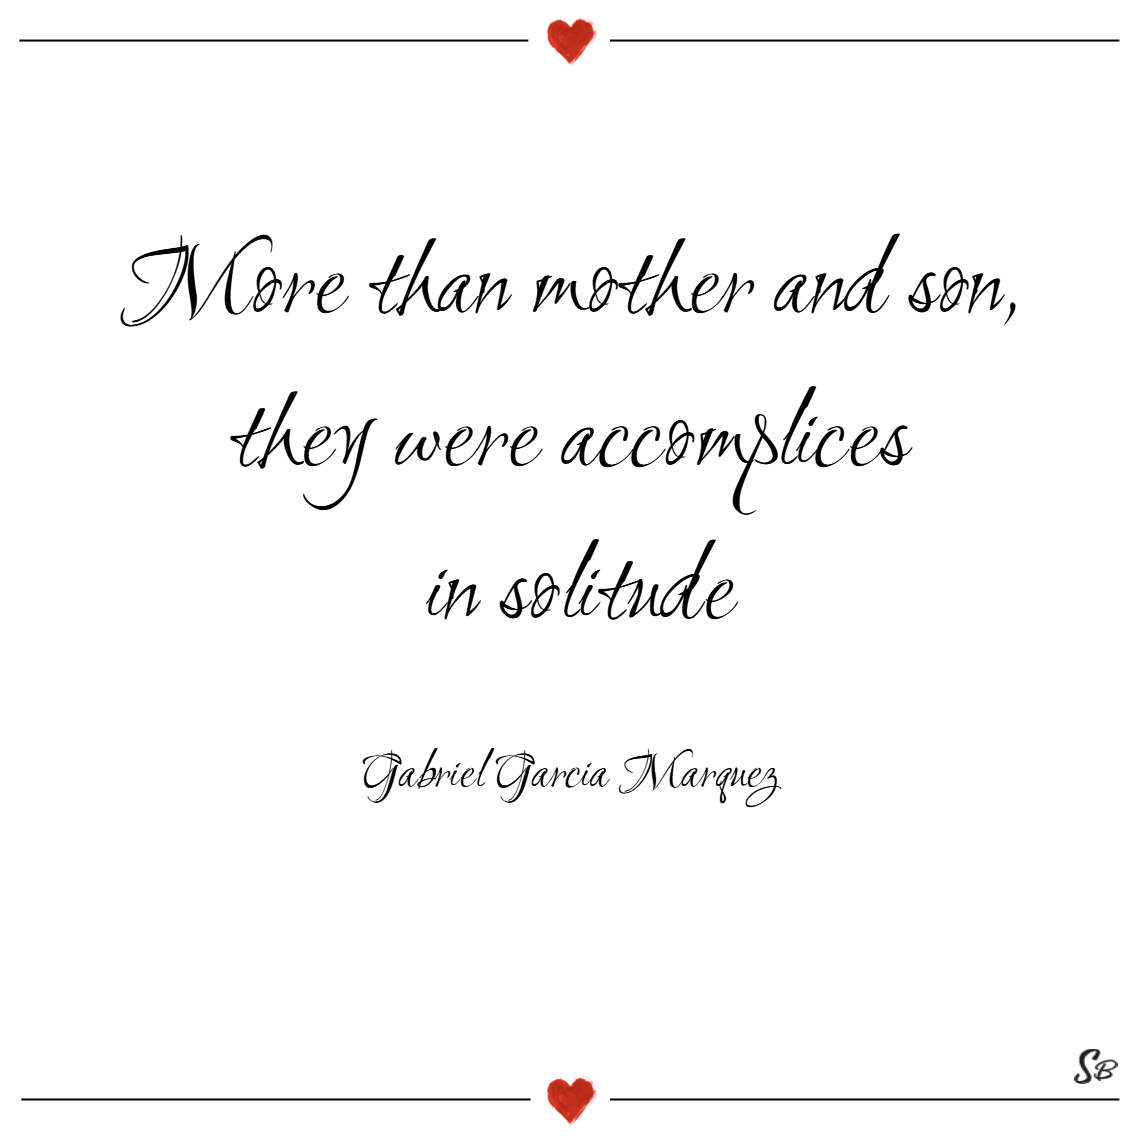 More than mother and son, they were accomplices in solitude. – gabriel garcia marquez